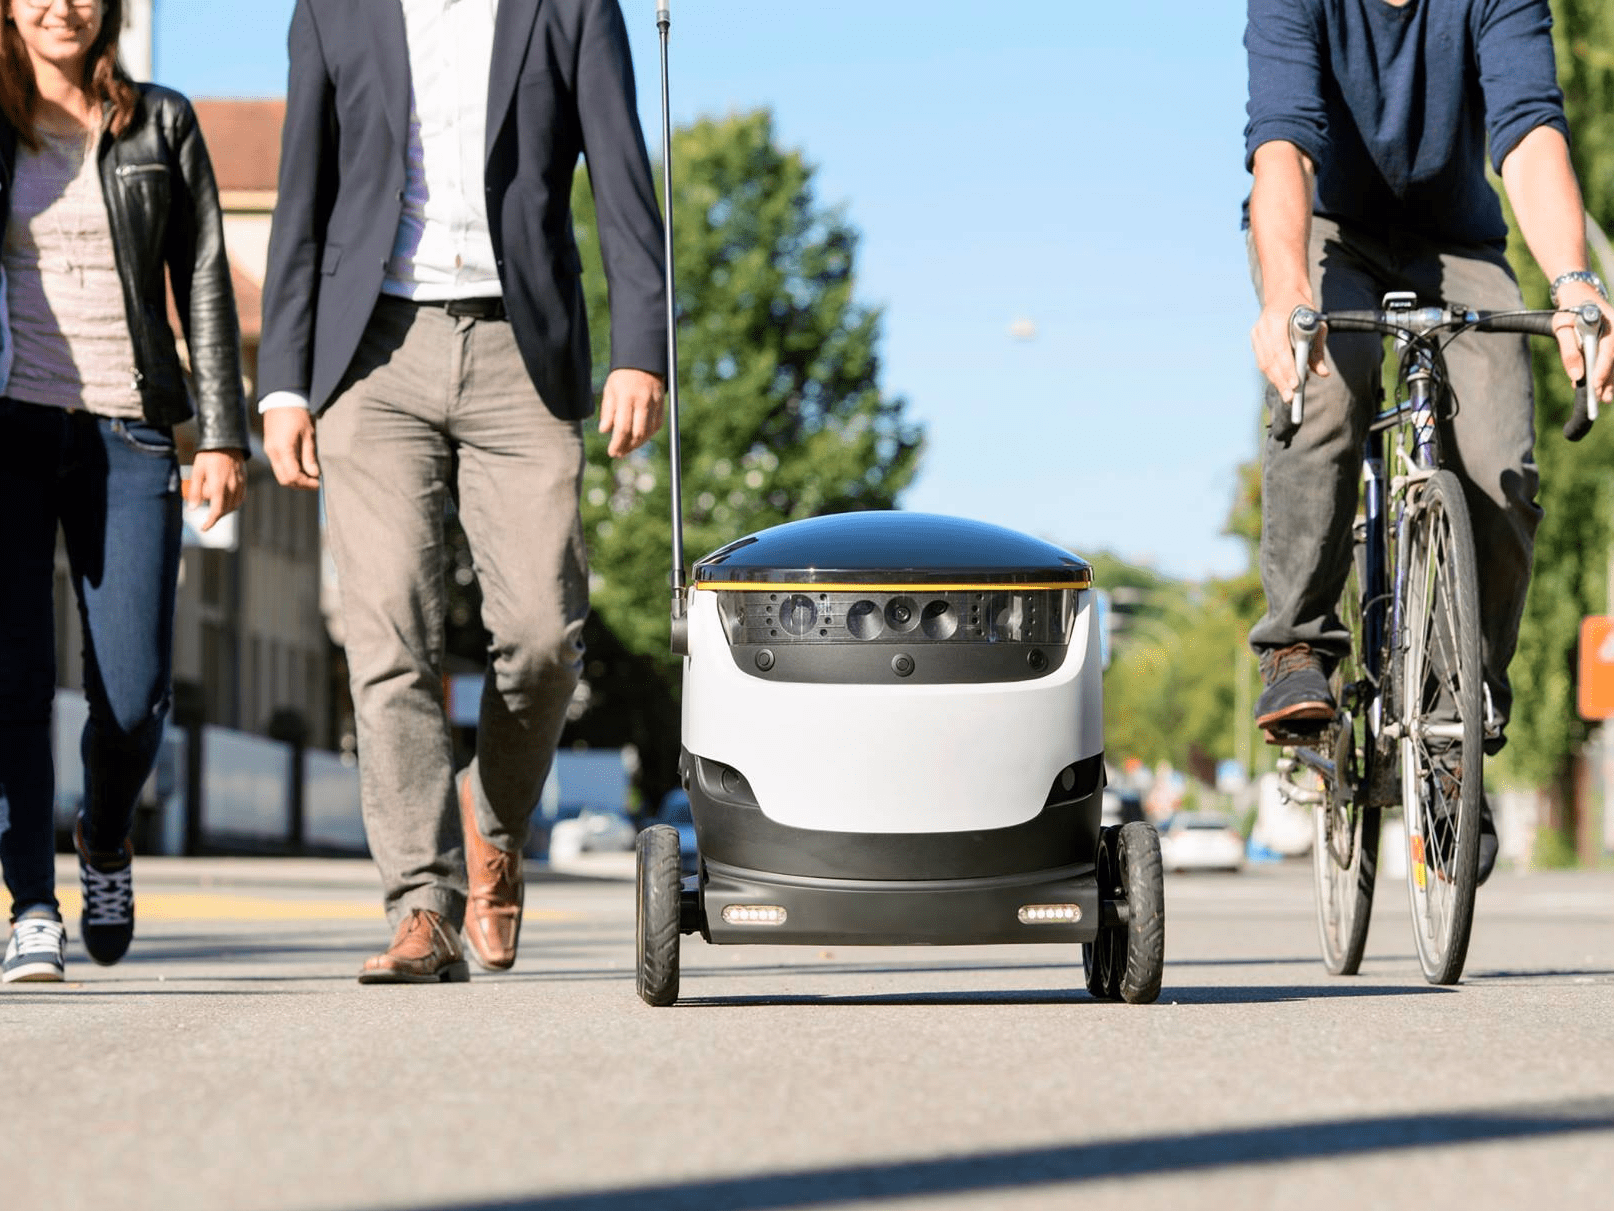 Virginia is the first state to legalize delivery robots